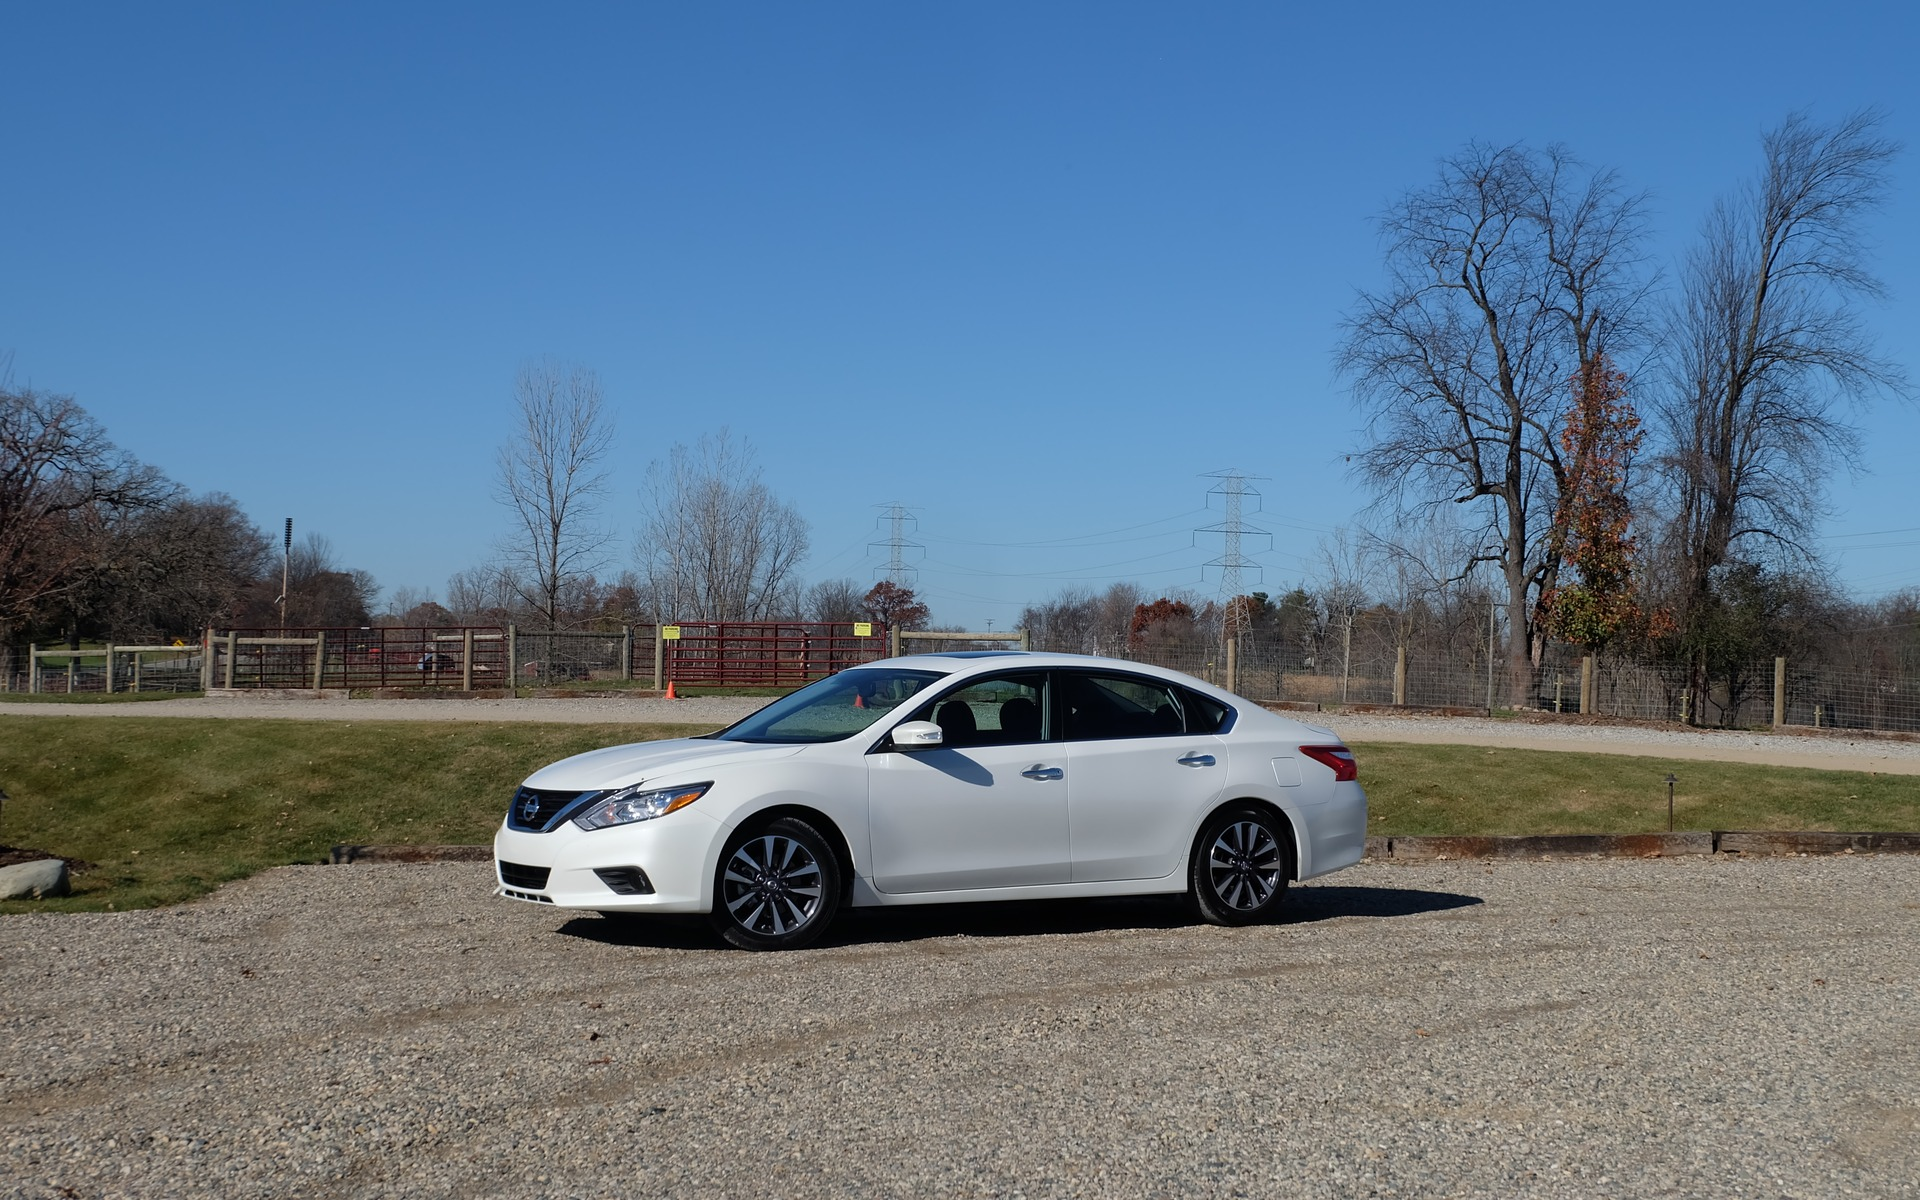 Used Nissan Altima >> 2016 Nissan Altima: Making Big Changes With Small Details - 10/30